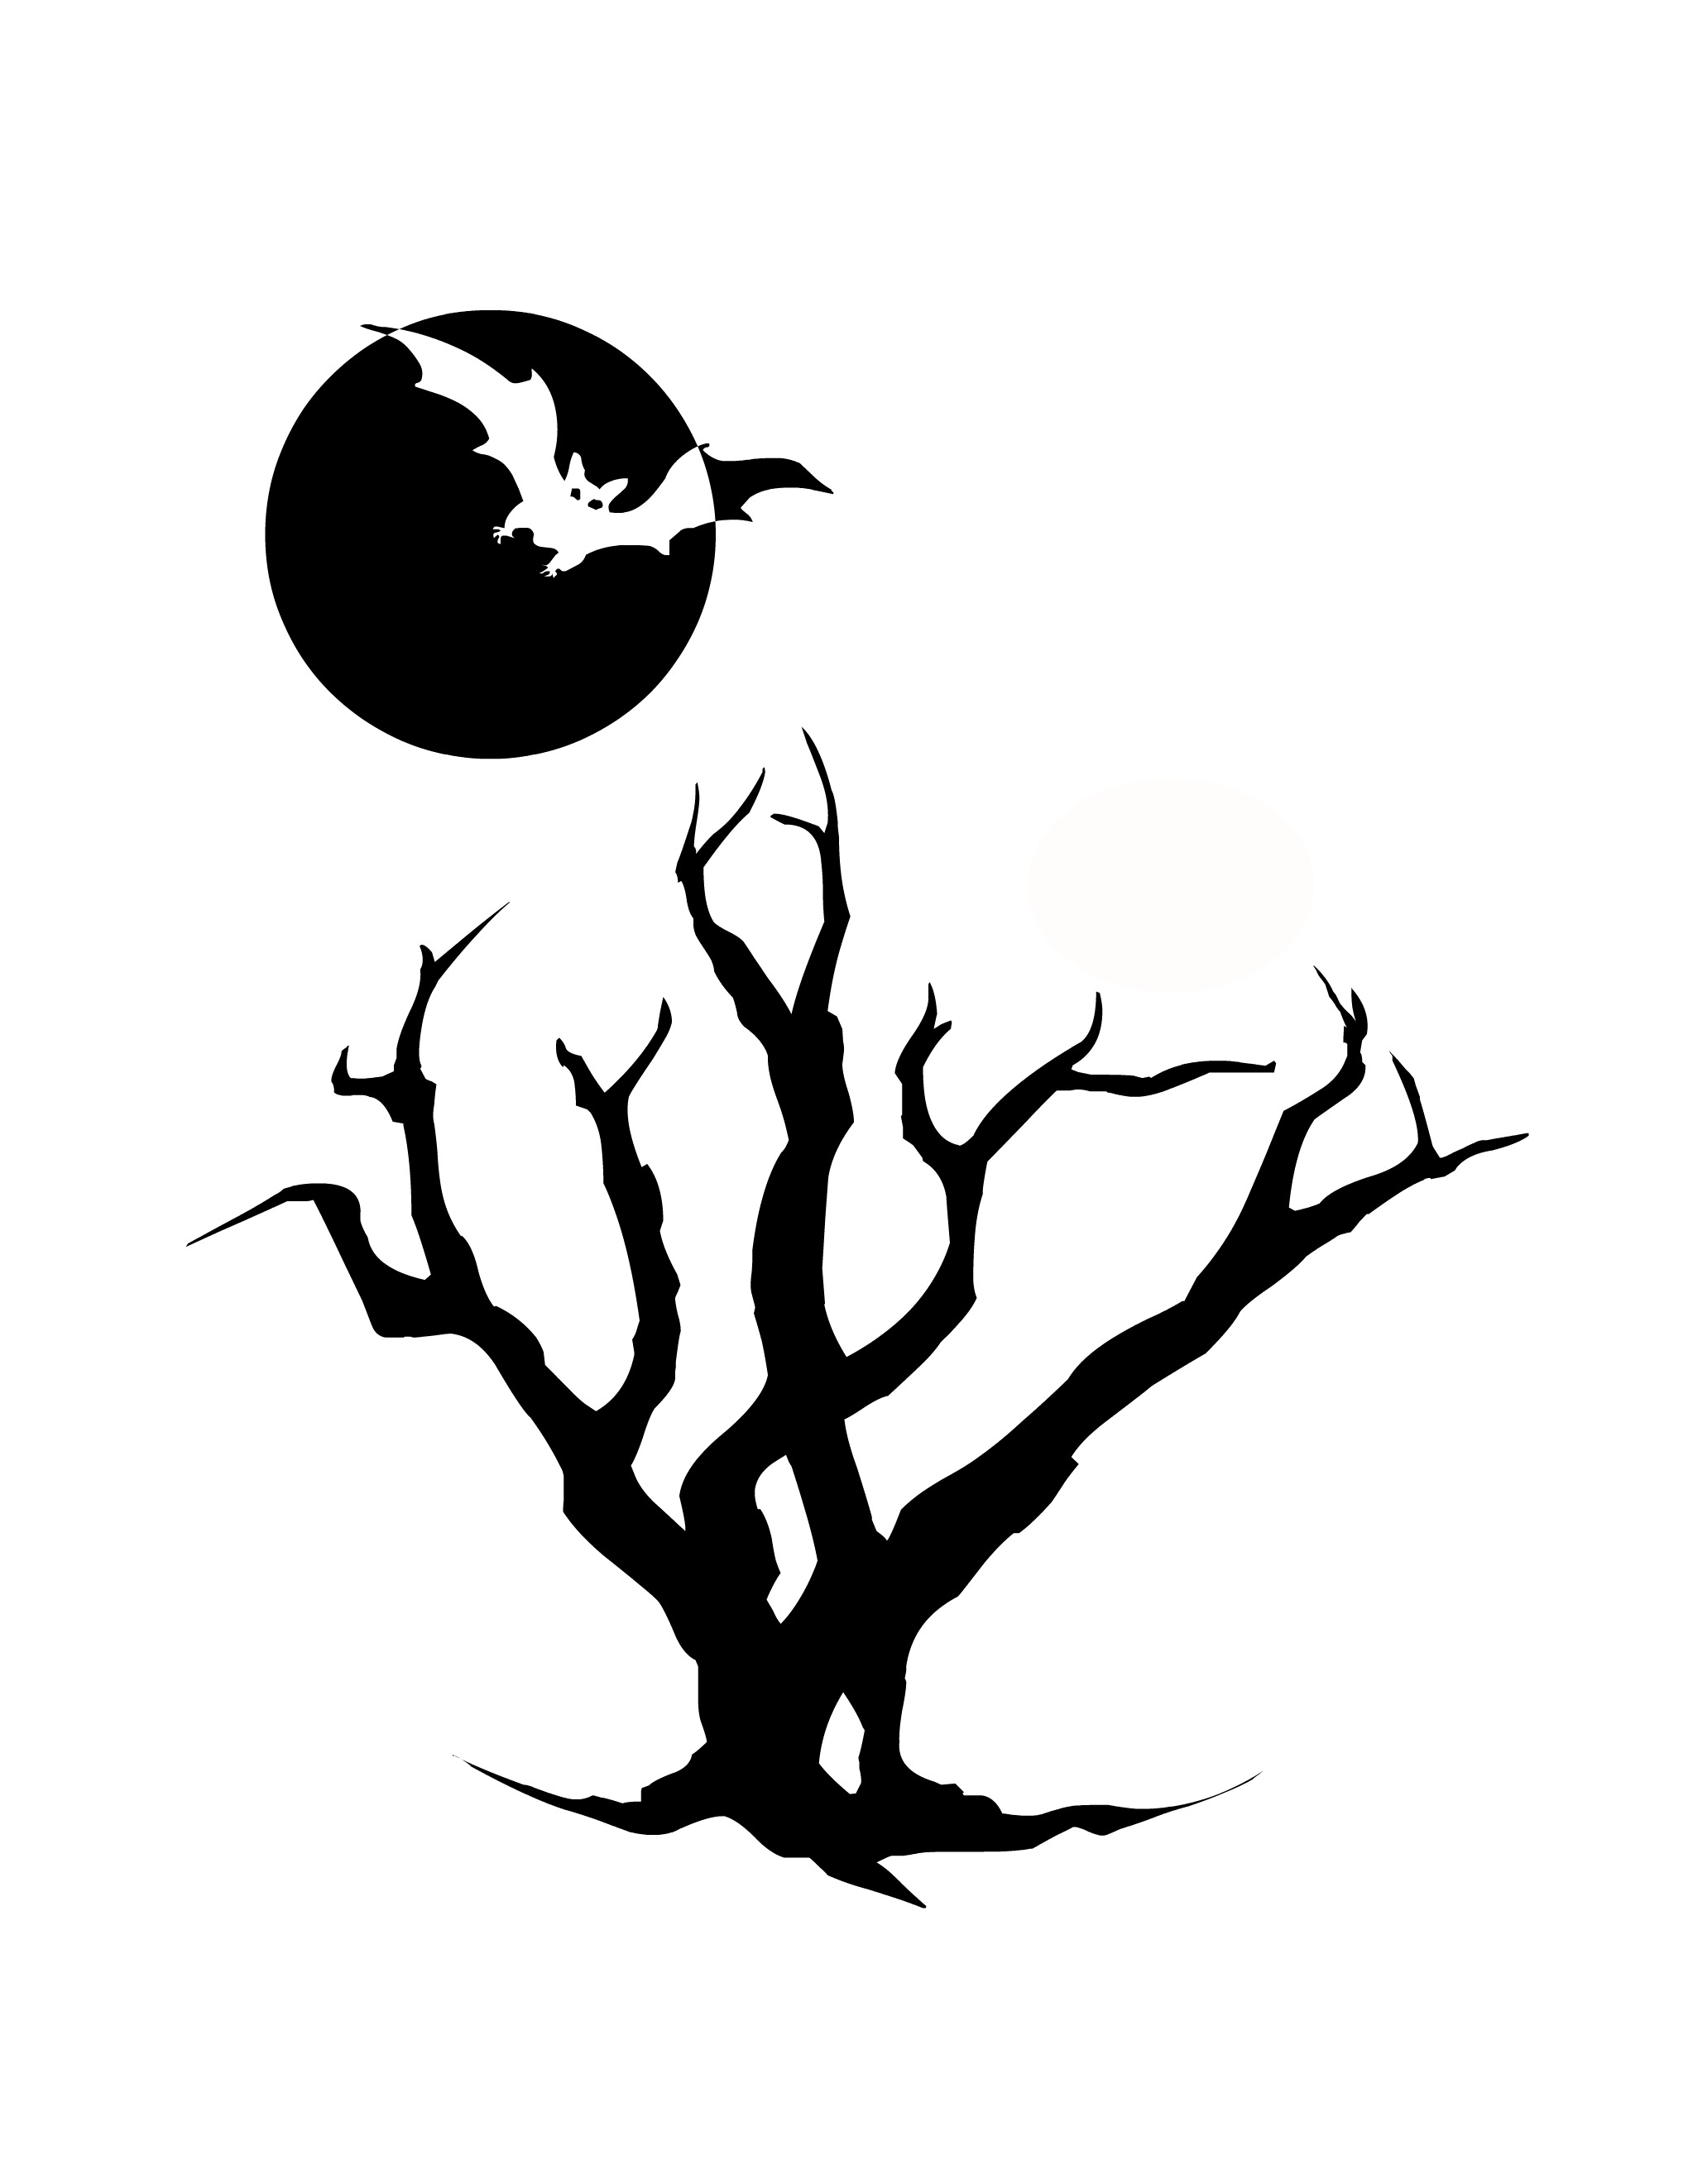 Spooky clipart branch Tree outline Clip tree Free